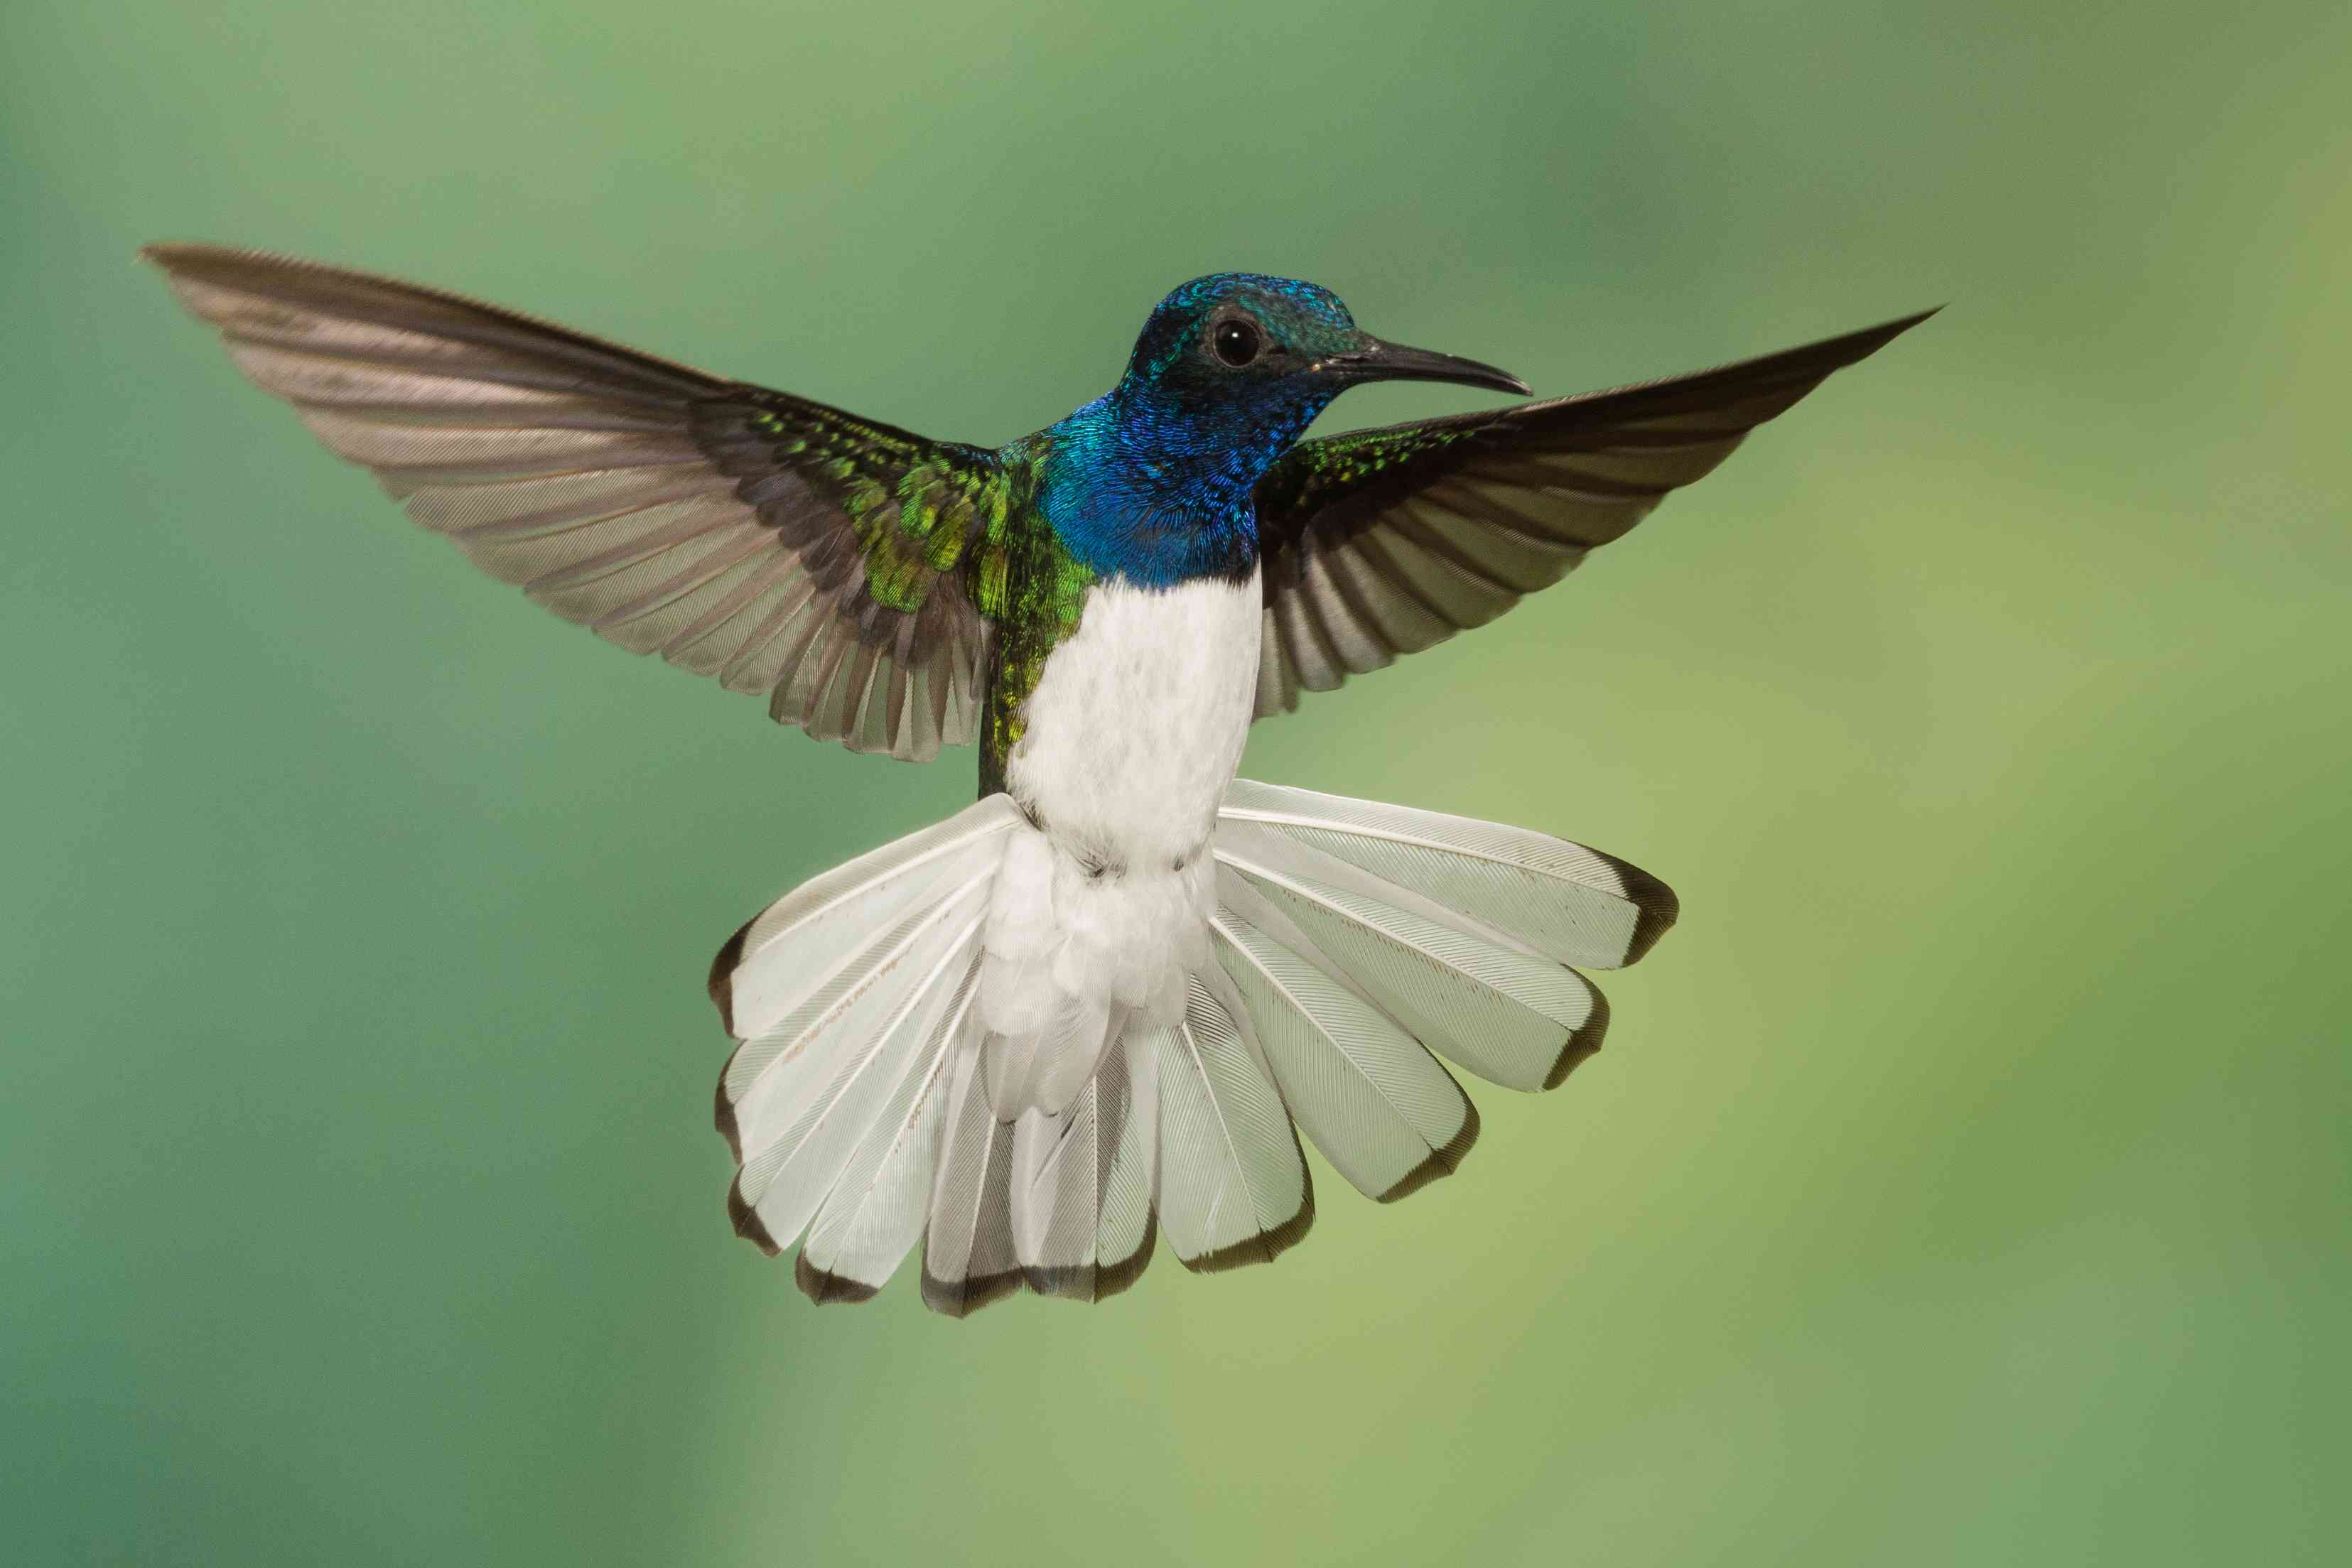 White-necked jacobin hummingbird flying with white tail extended